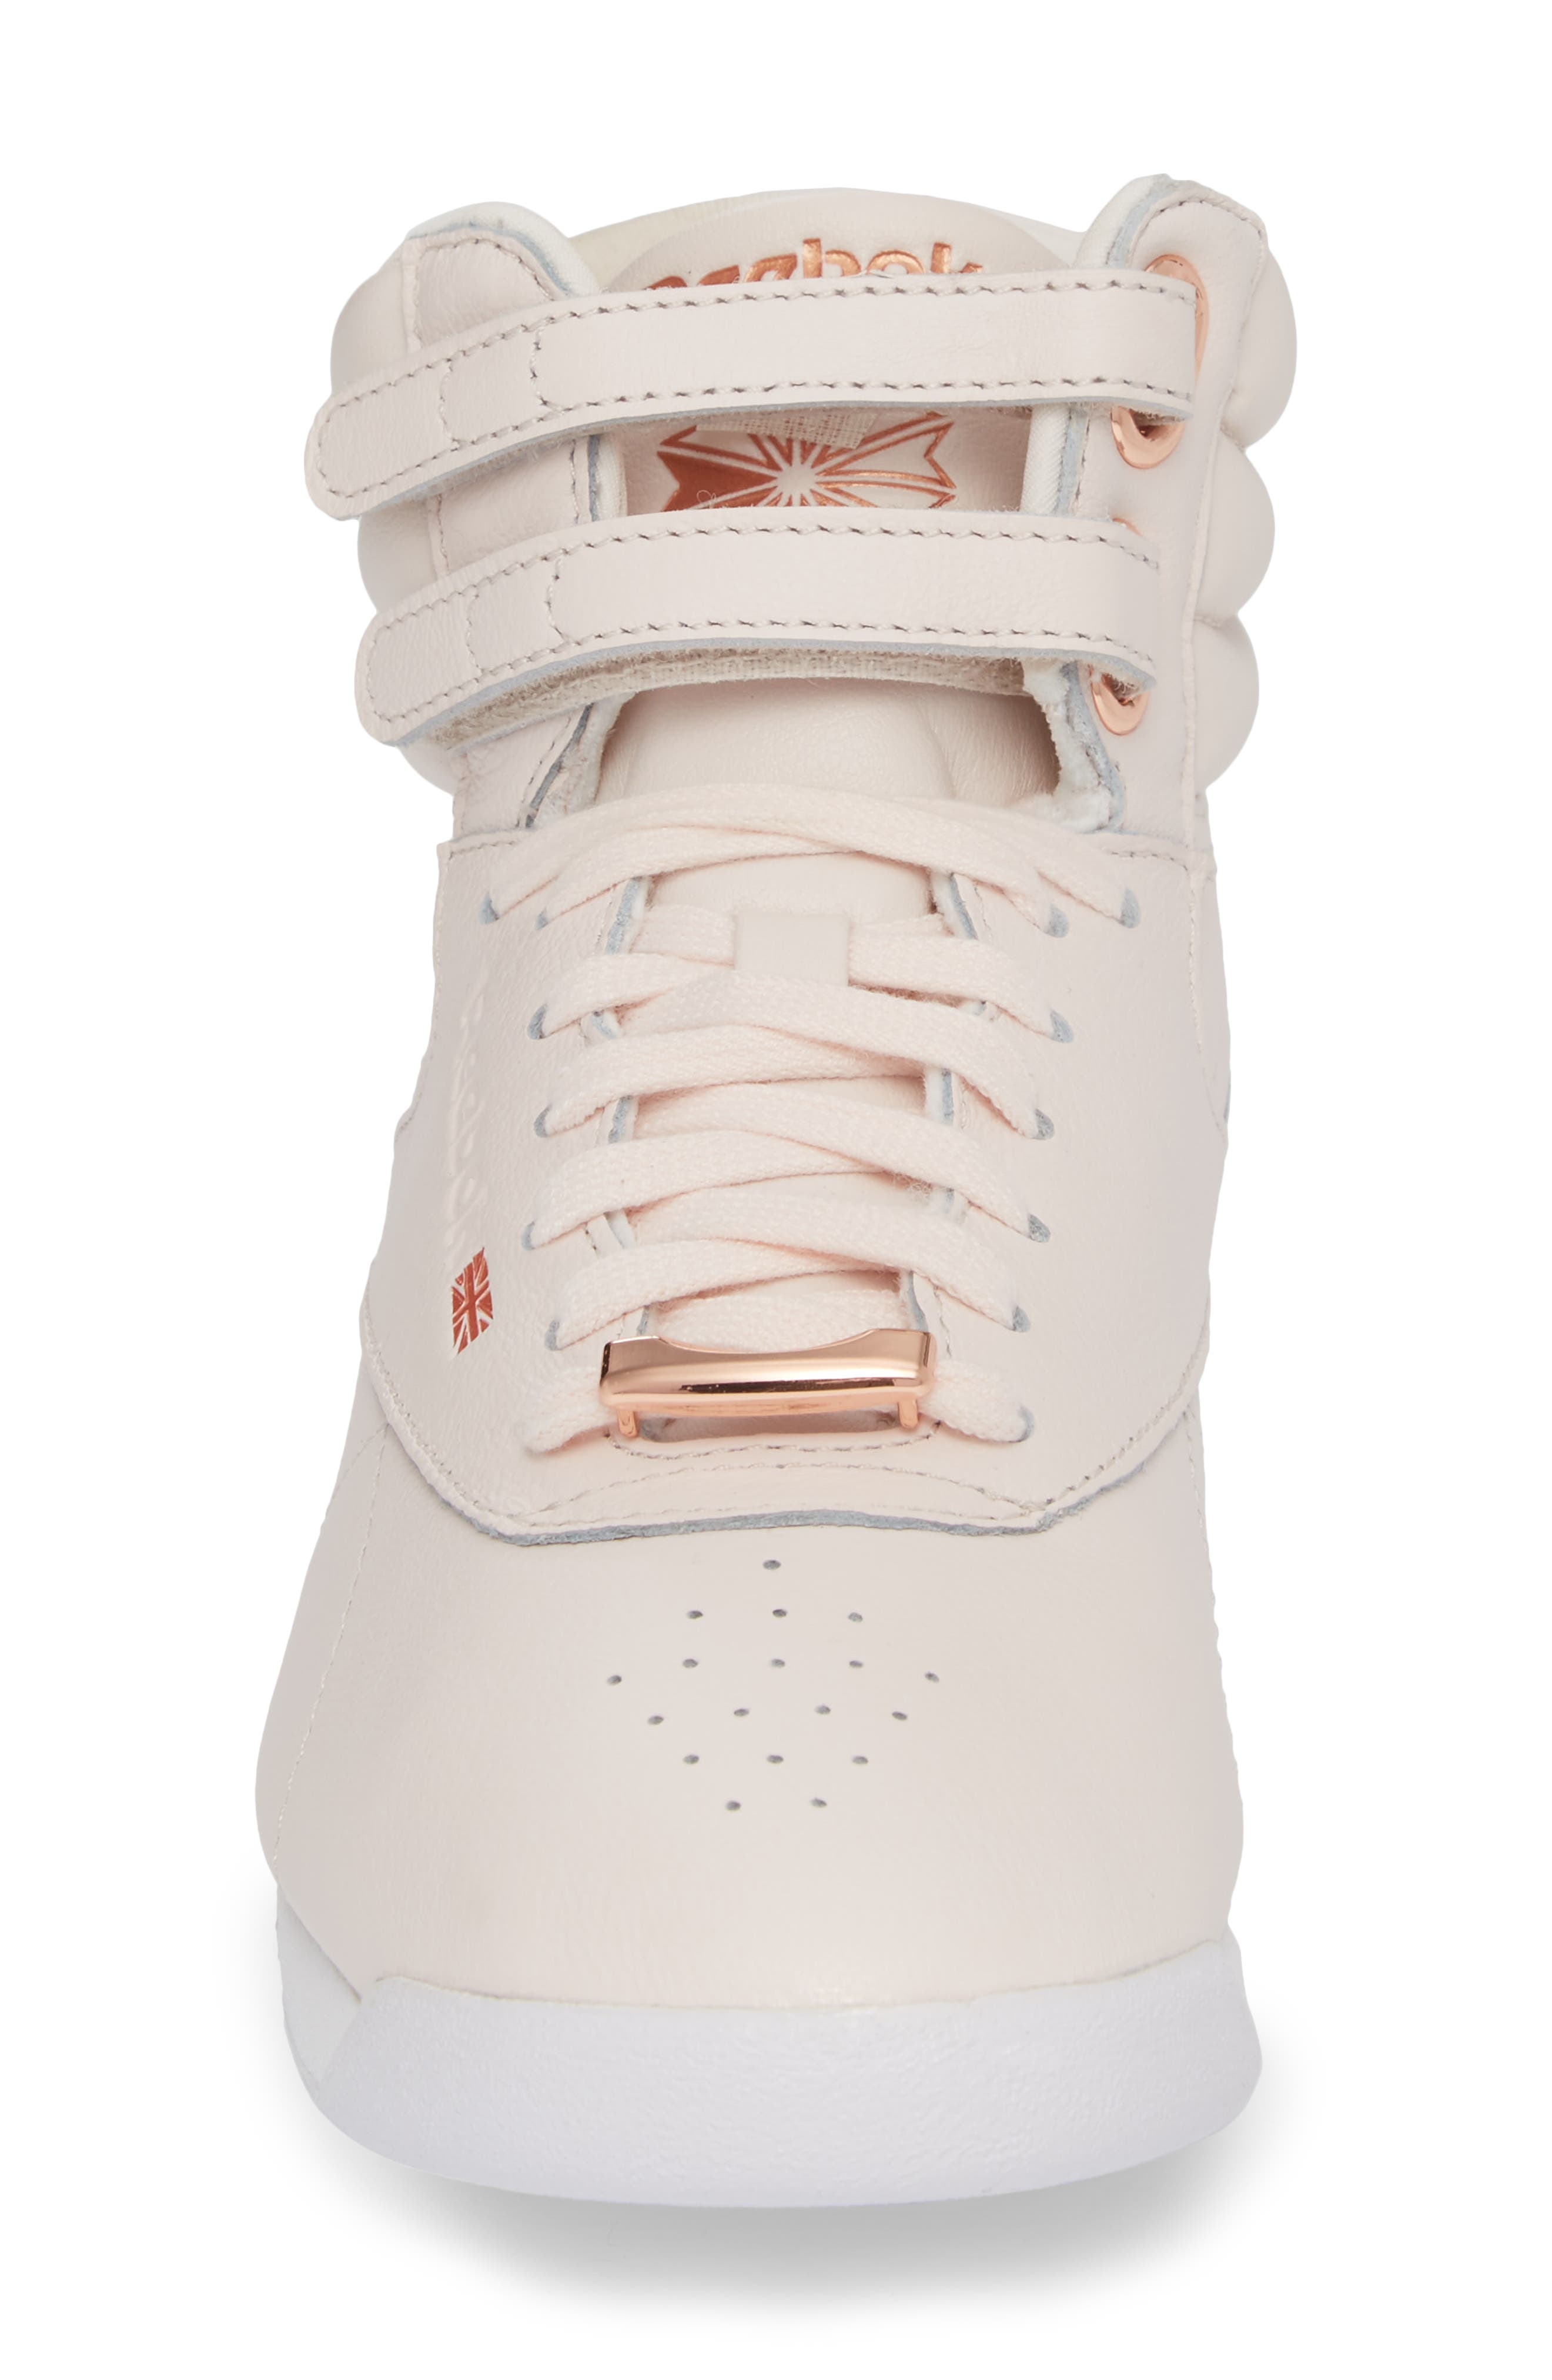 Freestyle Hi Muted Sneaker,                             Alternate thumbnail 4, color,                             Pale Pink/ White/ Cool Shadow